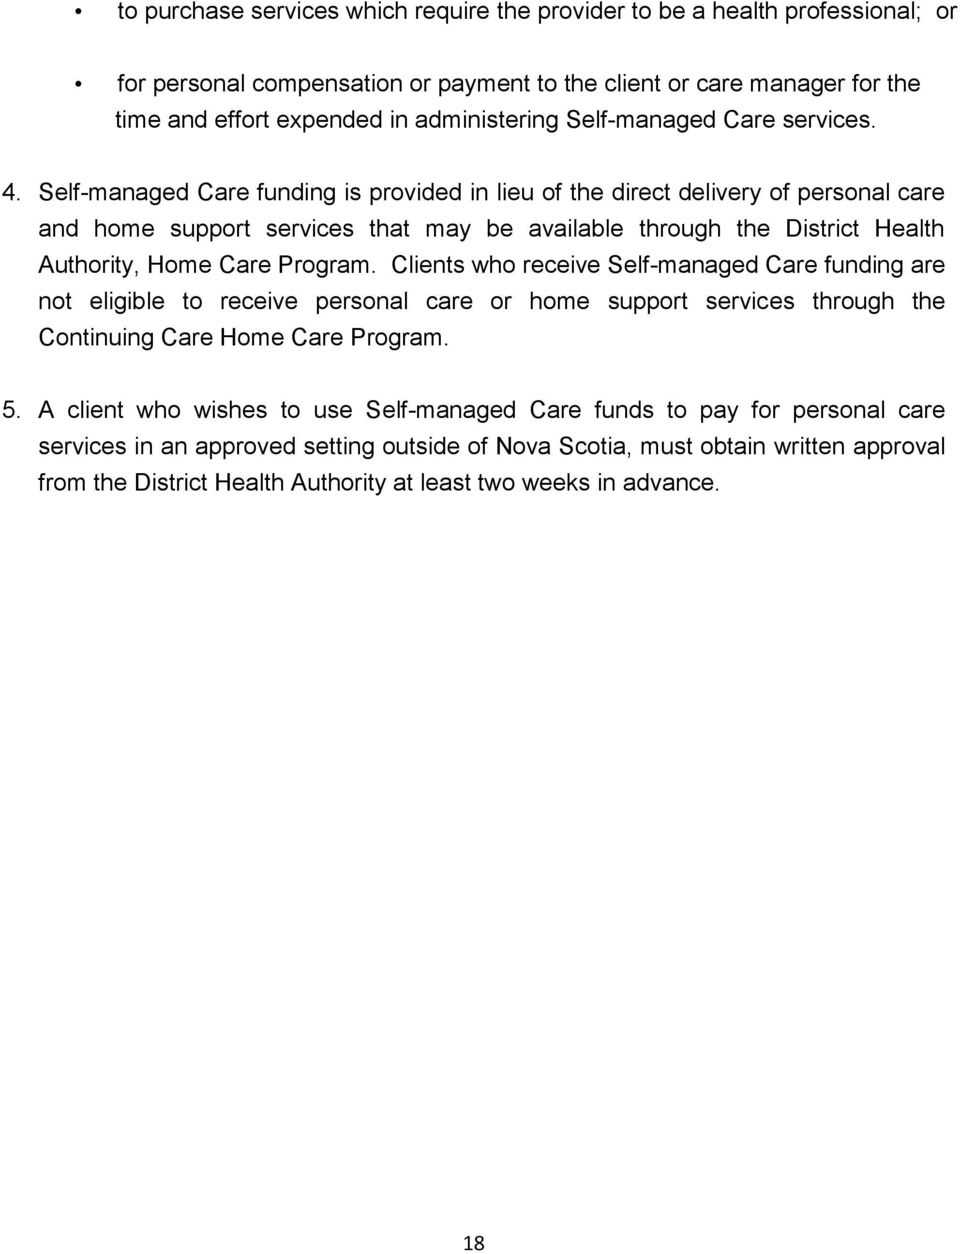 Self-managed Care funding is provided in lieu of the direct delivery of personal care and home support services that may be available through the District Health Authority, Home Care Program.